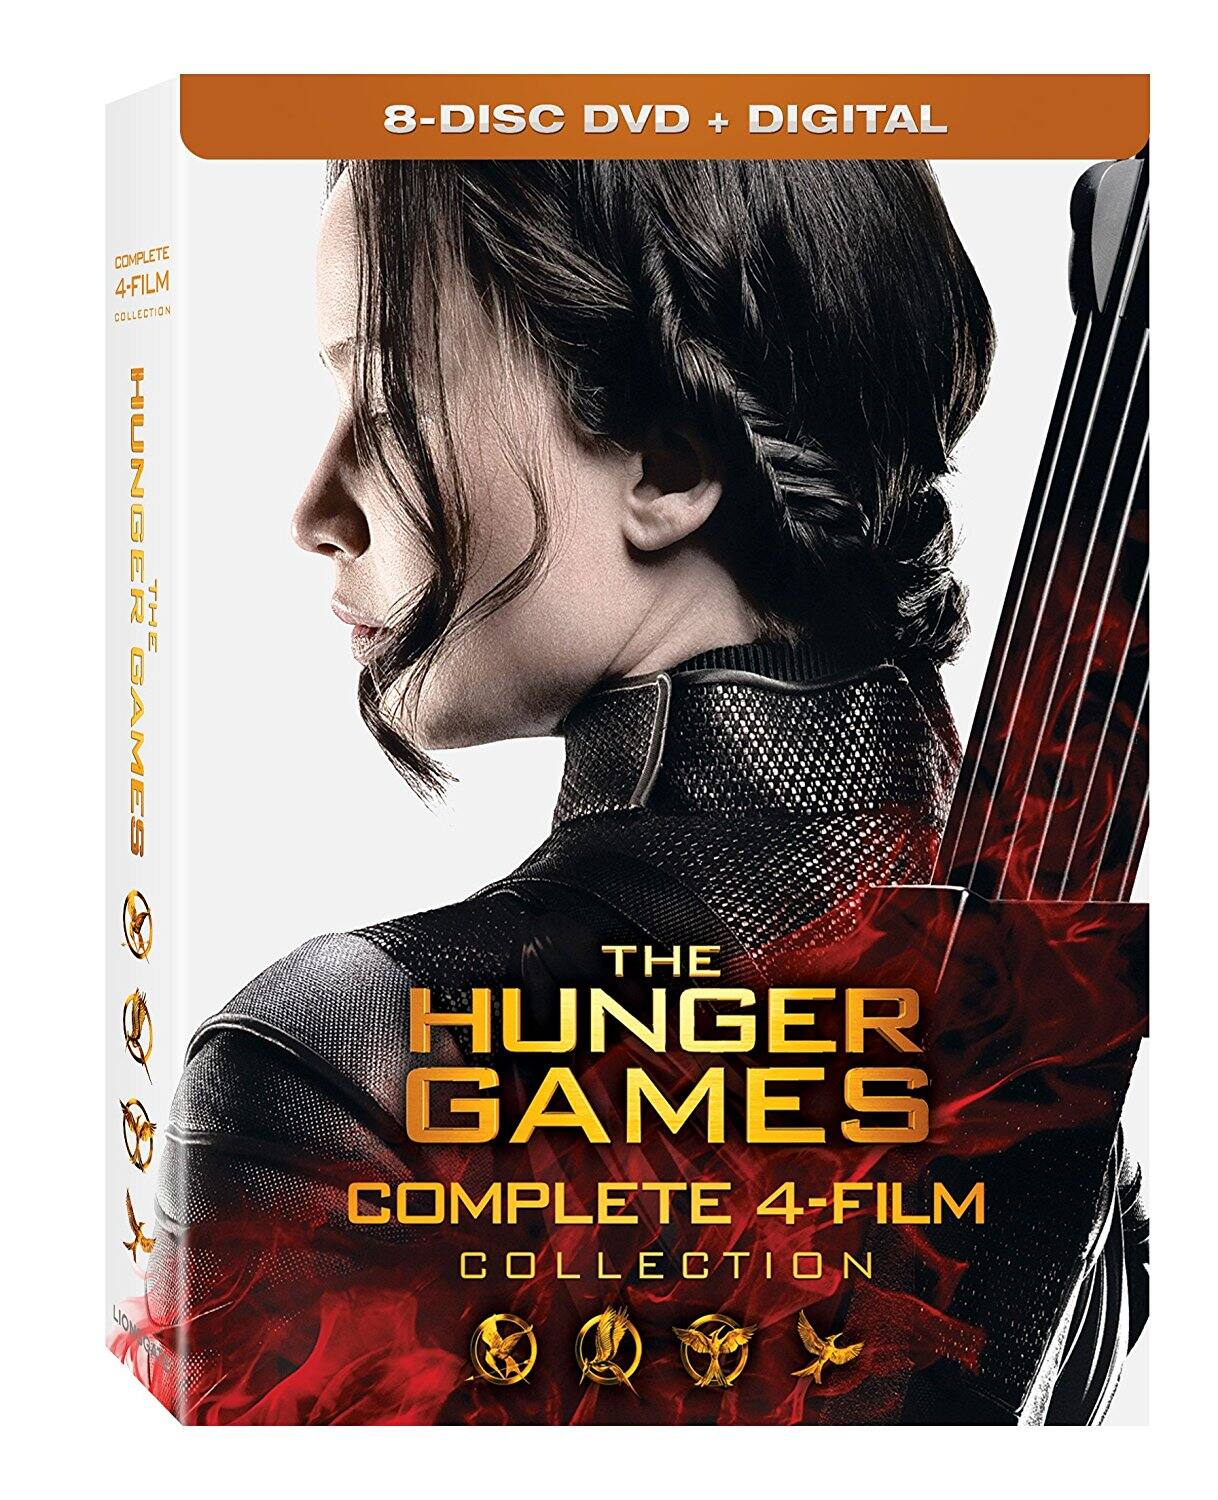 The Hunger Games: Complete 4 Film Collection (8-Disc DVD + Digital) $13 via Amazon